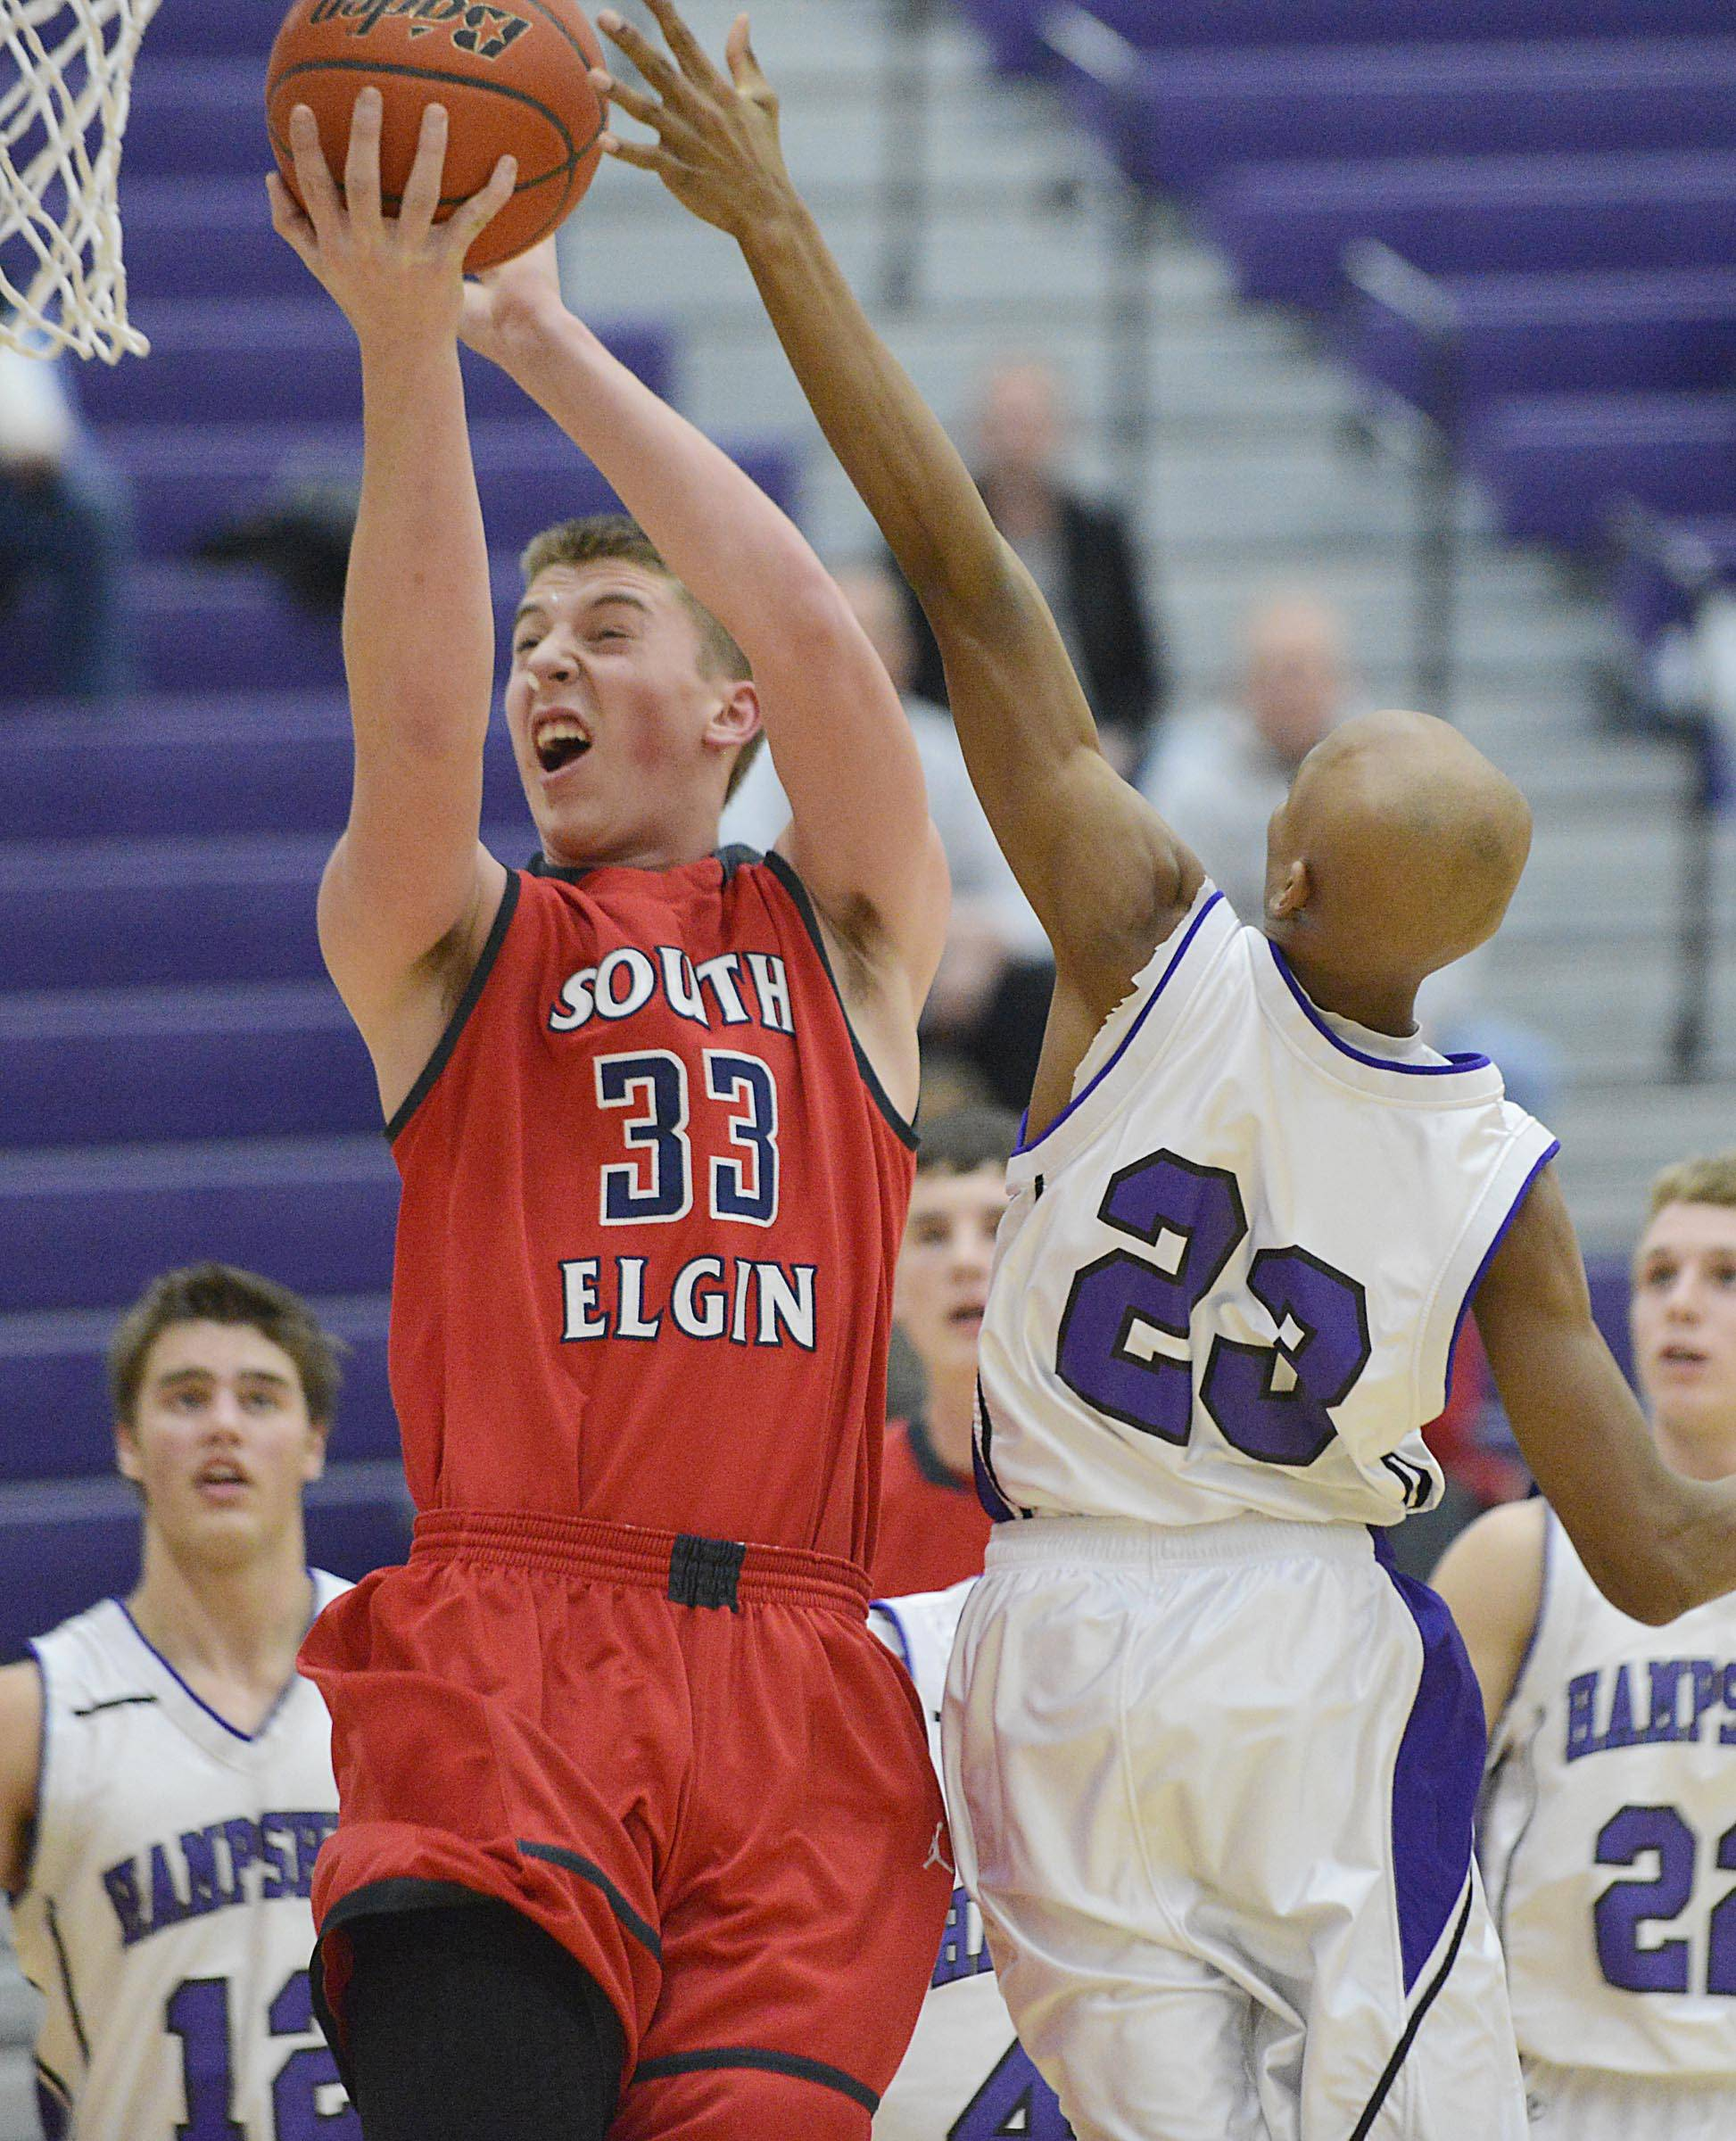 South Elgin's Jake Amrhein is fouled by Hampshire's Nico Bennett.